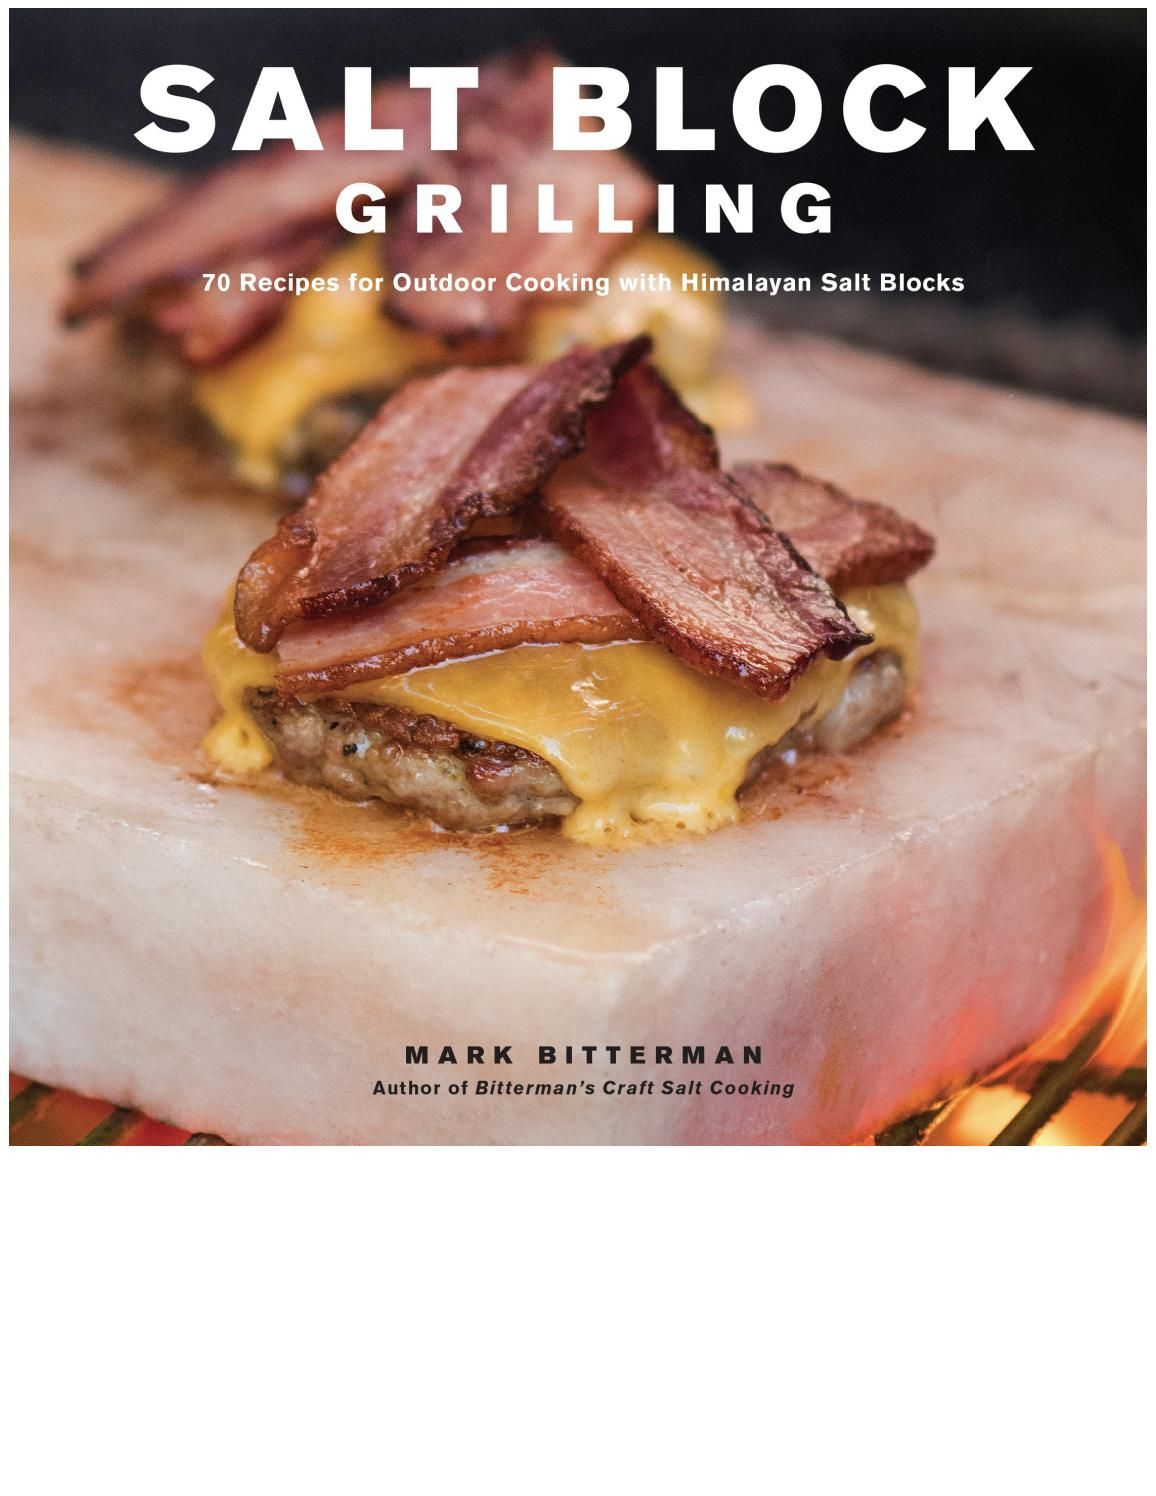 Salt block grilling 70 recipes for outdoor cooking with himalayan salt block grilling 70 recipes for outdoor cooking with himalayan salt blocks issuu pdf forumfinder Choice Image